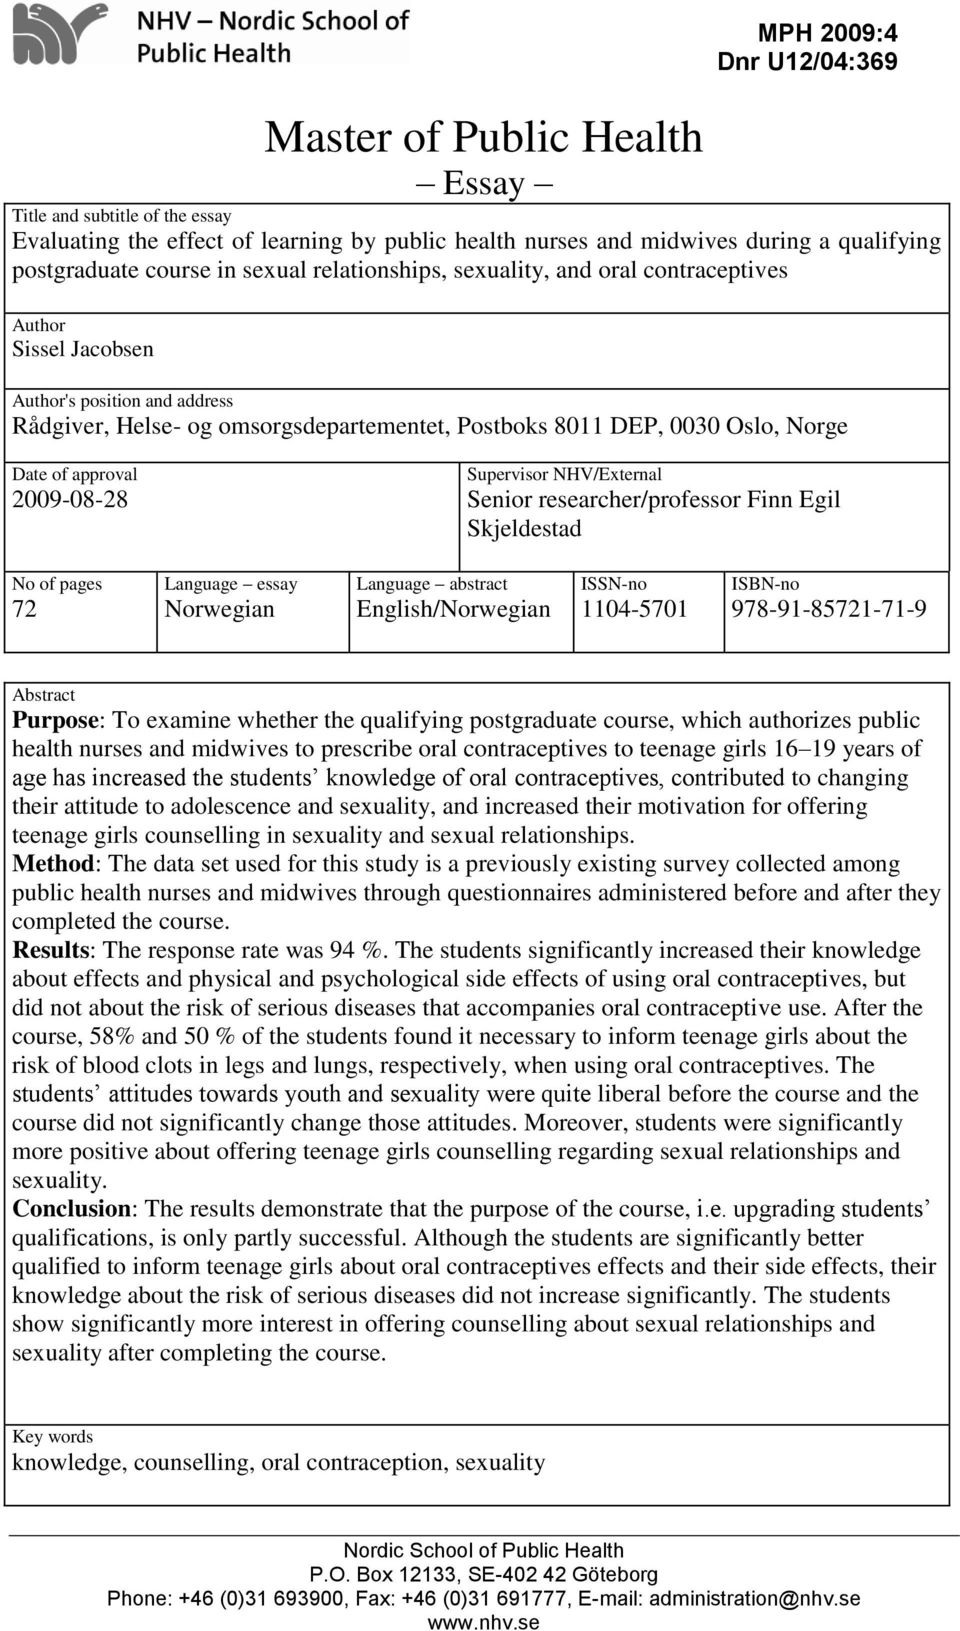 approval 2009-08-28 Supervisor NHV/External Senior researcher/professor Finn Egil Skjeldestad No of pages 72 Language essay Norwegian Language abstract English/Norwegian ISSN-no 1104-5701 ISBN-no